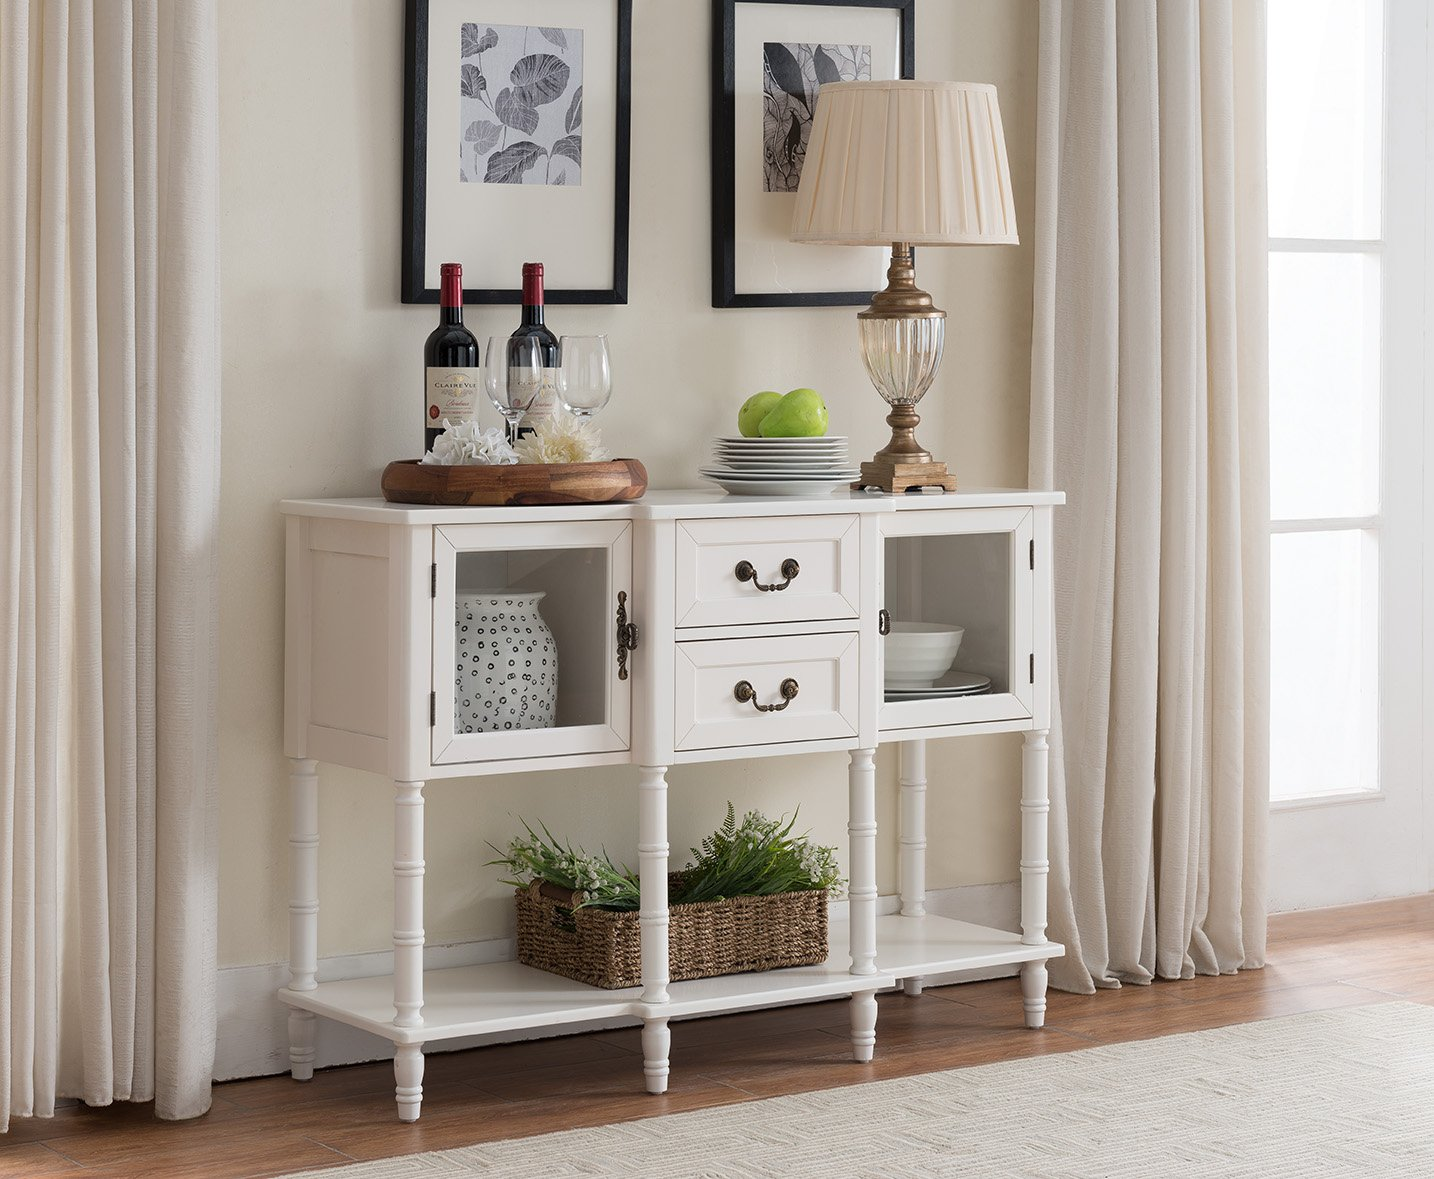 Kings Brand Furniture Wood Buffet Sideboard Cabinet Console Table, Cream White